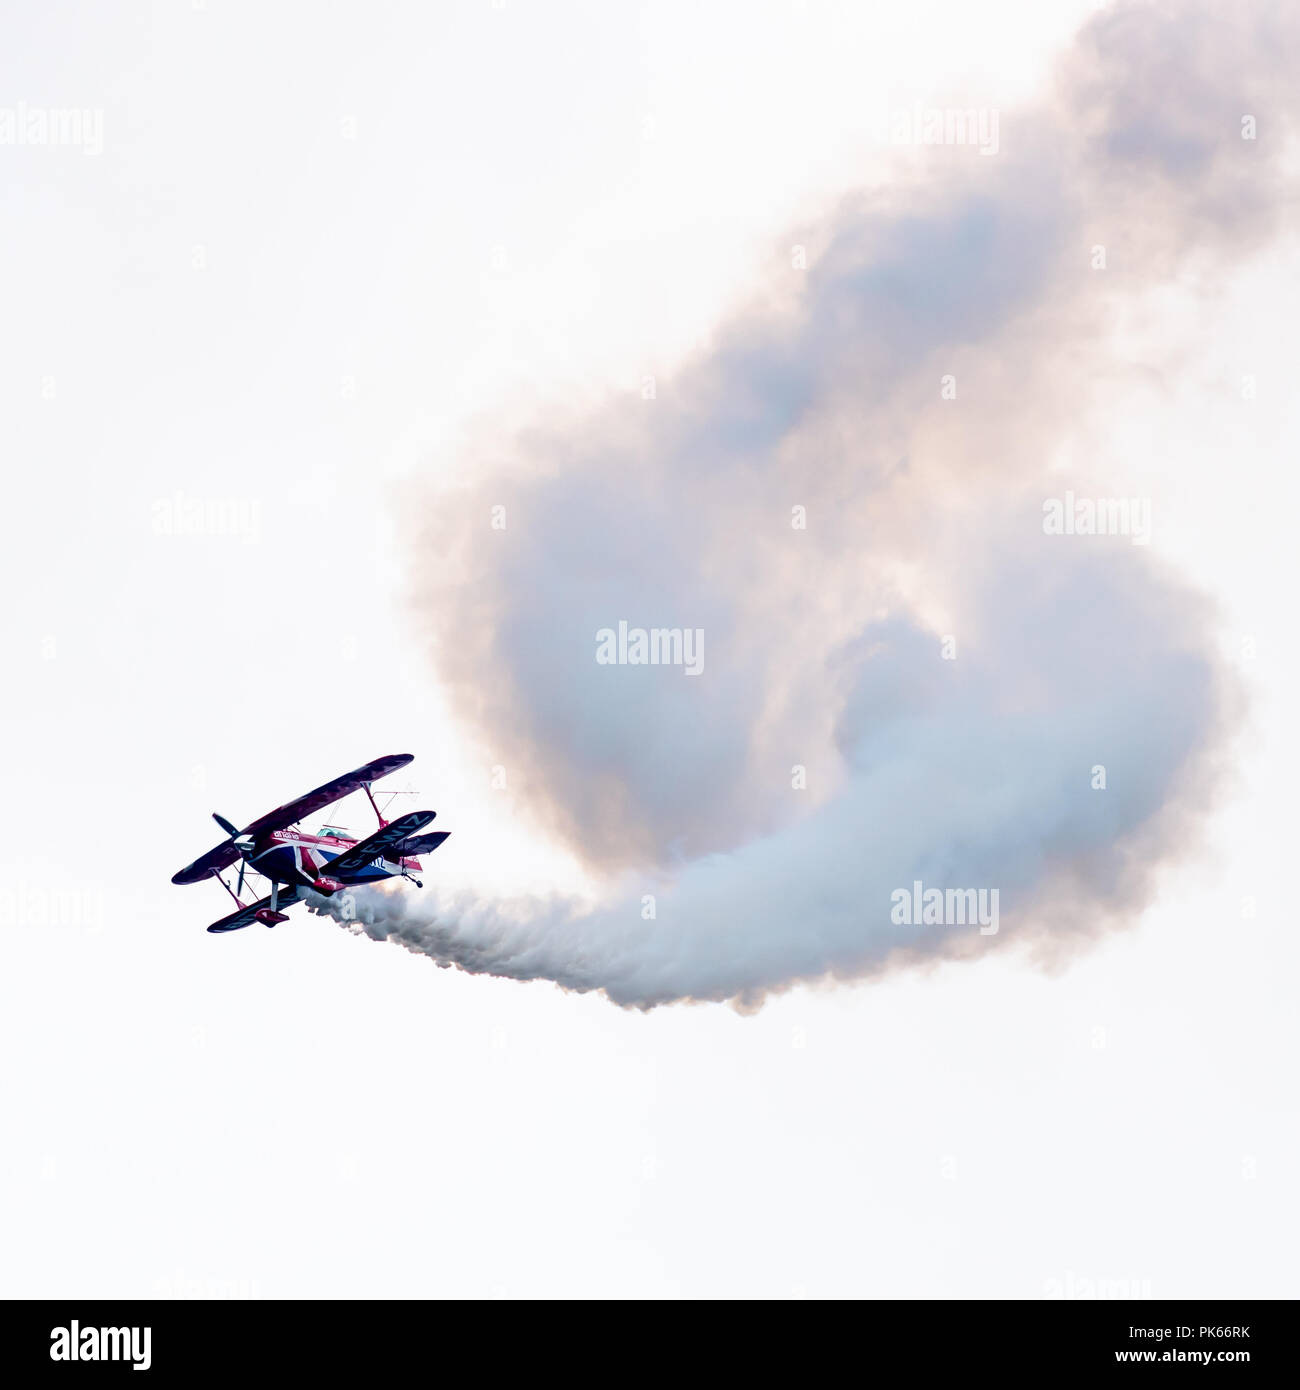 A corkscrew of white smoke billows behind Rich Goodwin's Pitts Special S2S biplane during an aerobatic display - Stock Image